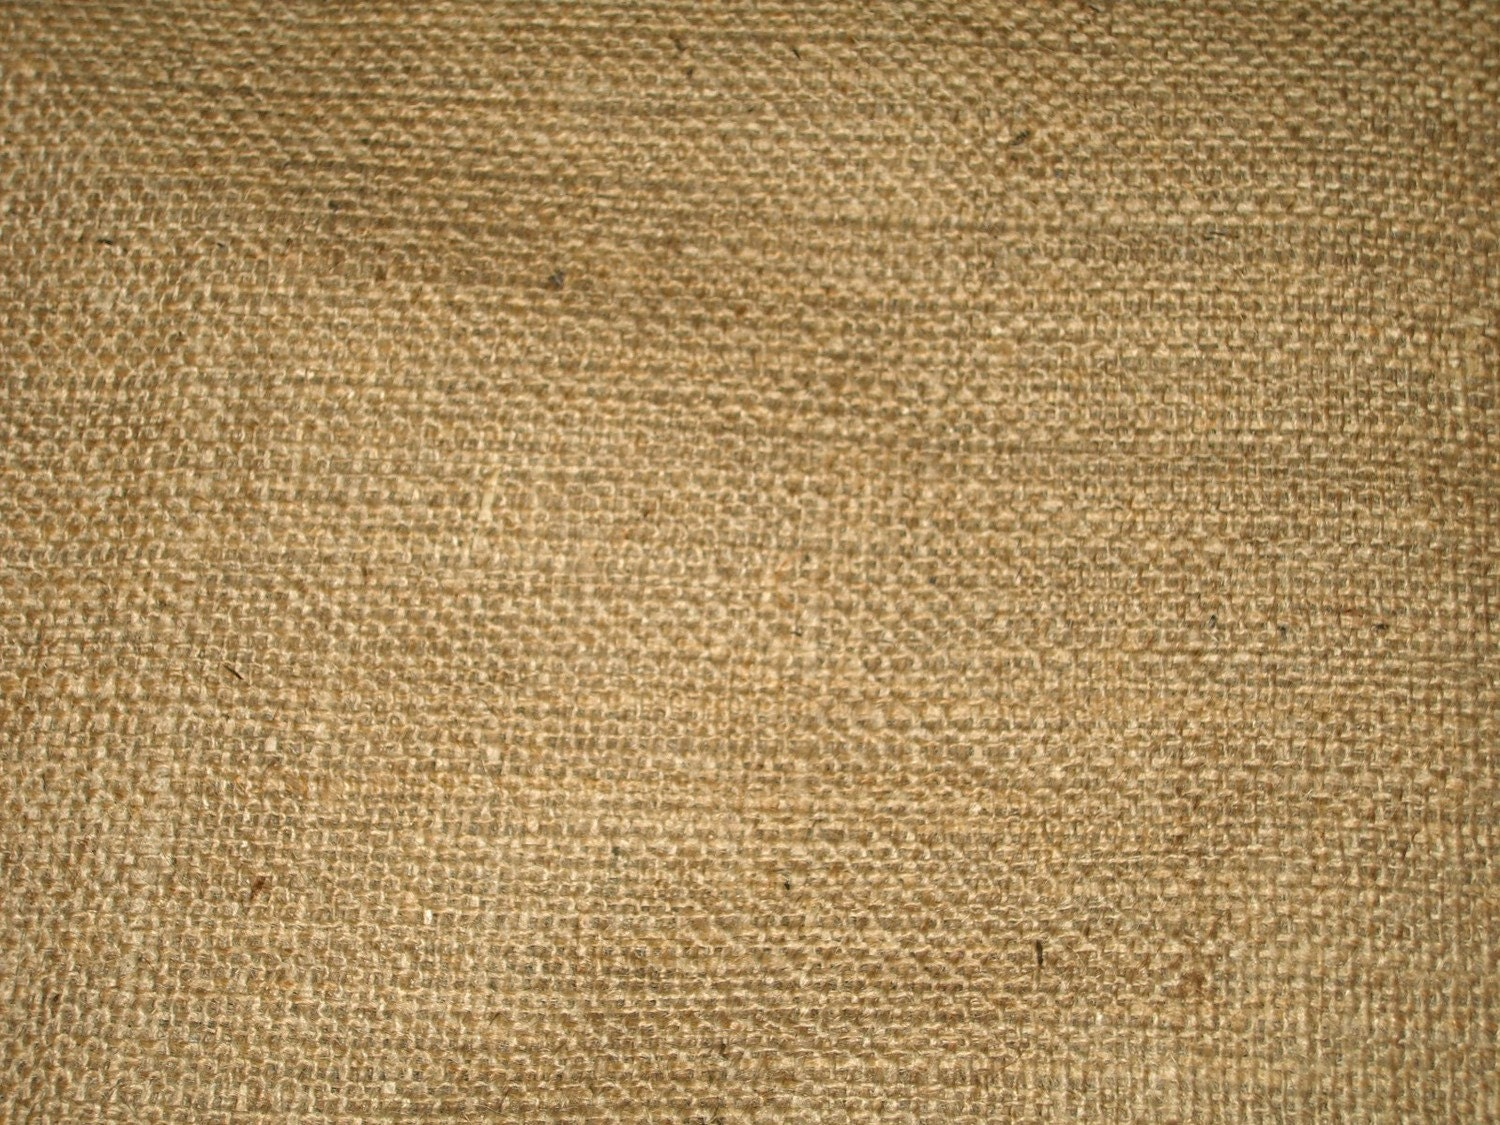 Khaki european orgnaic burlap fabric 1 yard for What is burlap material